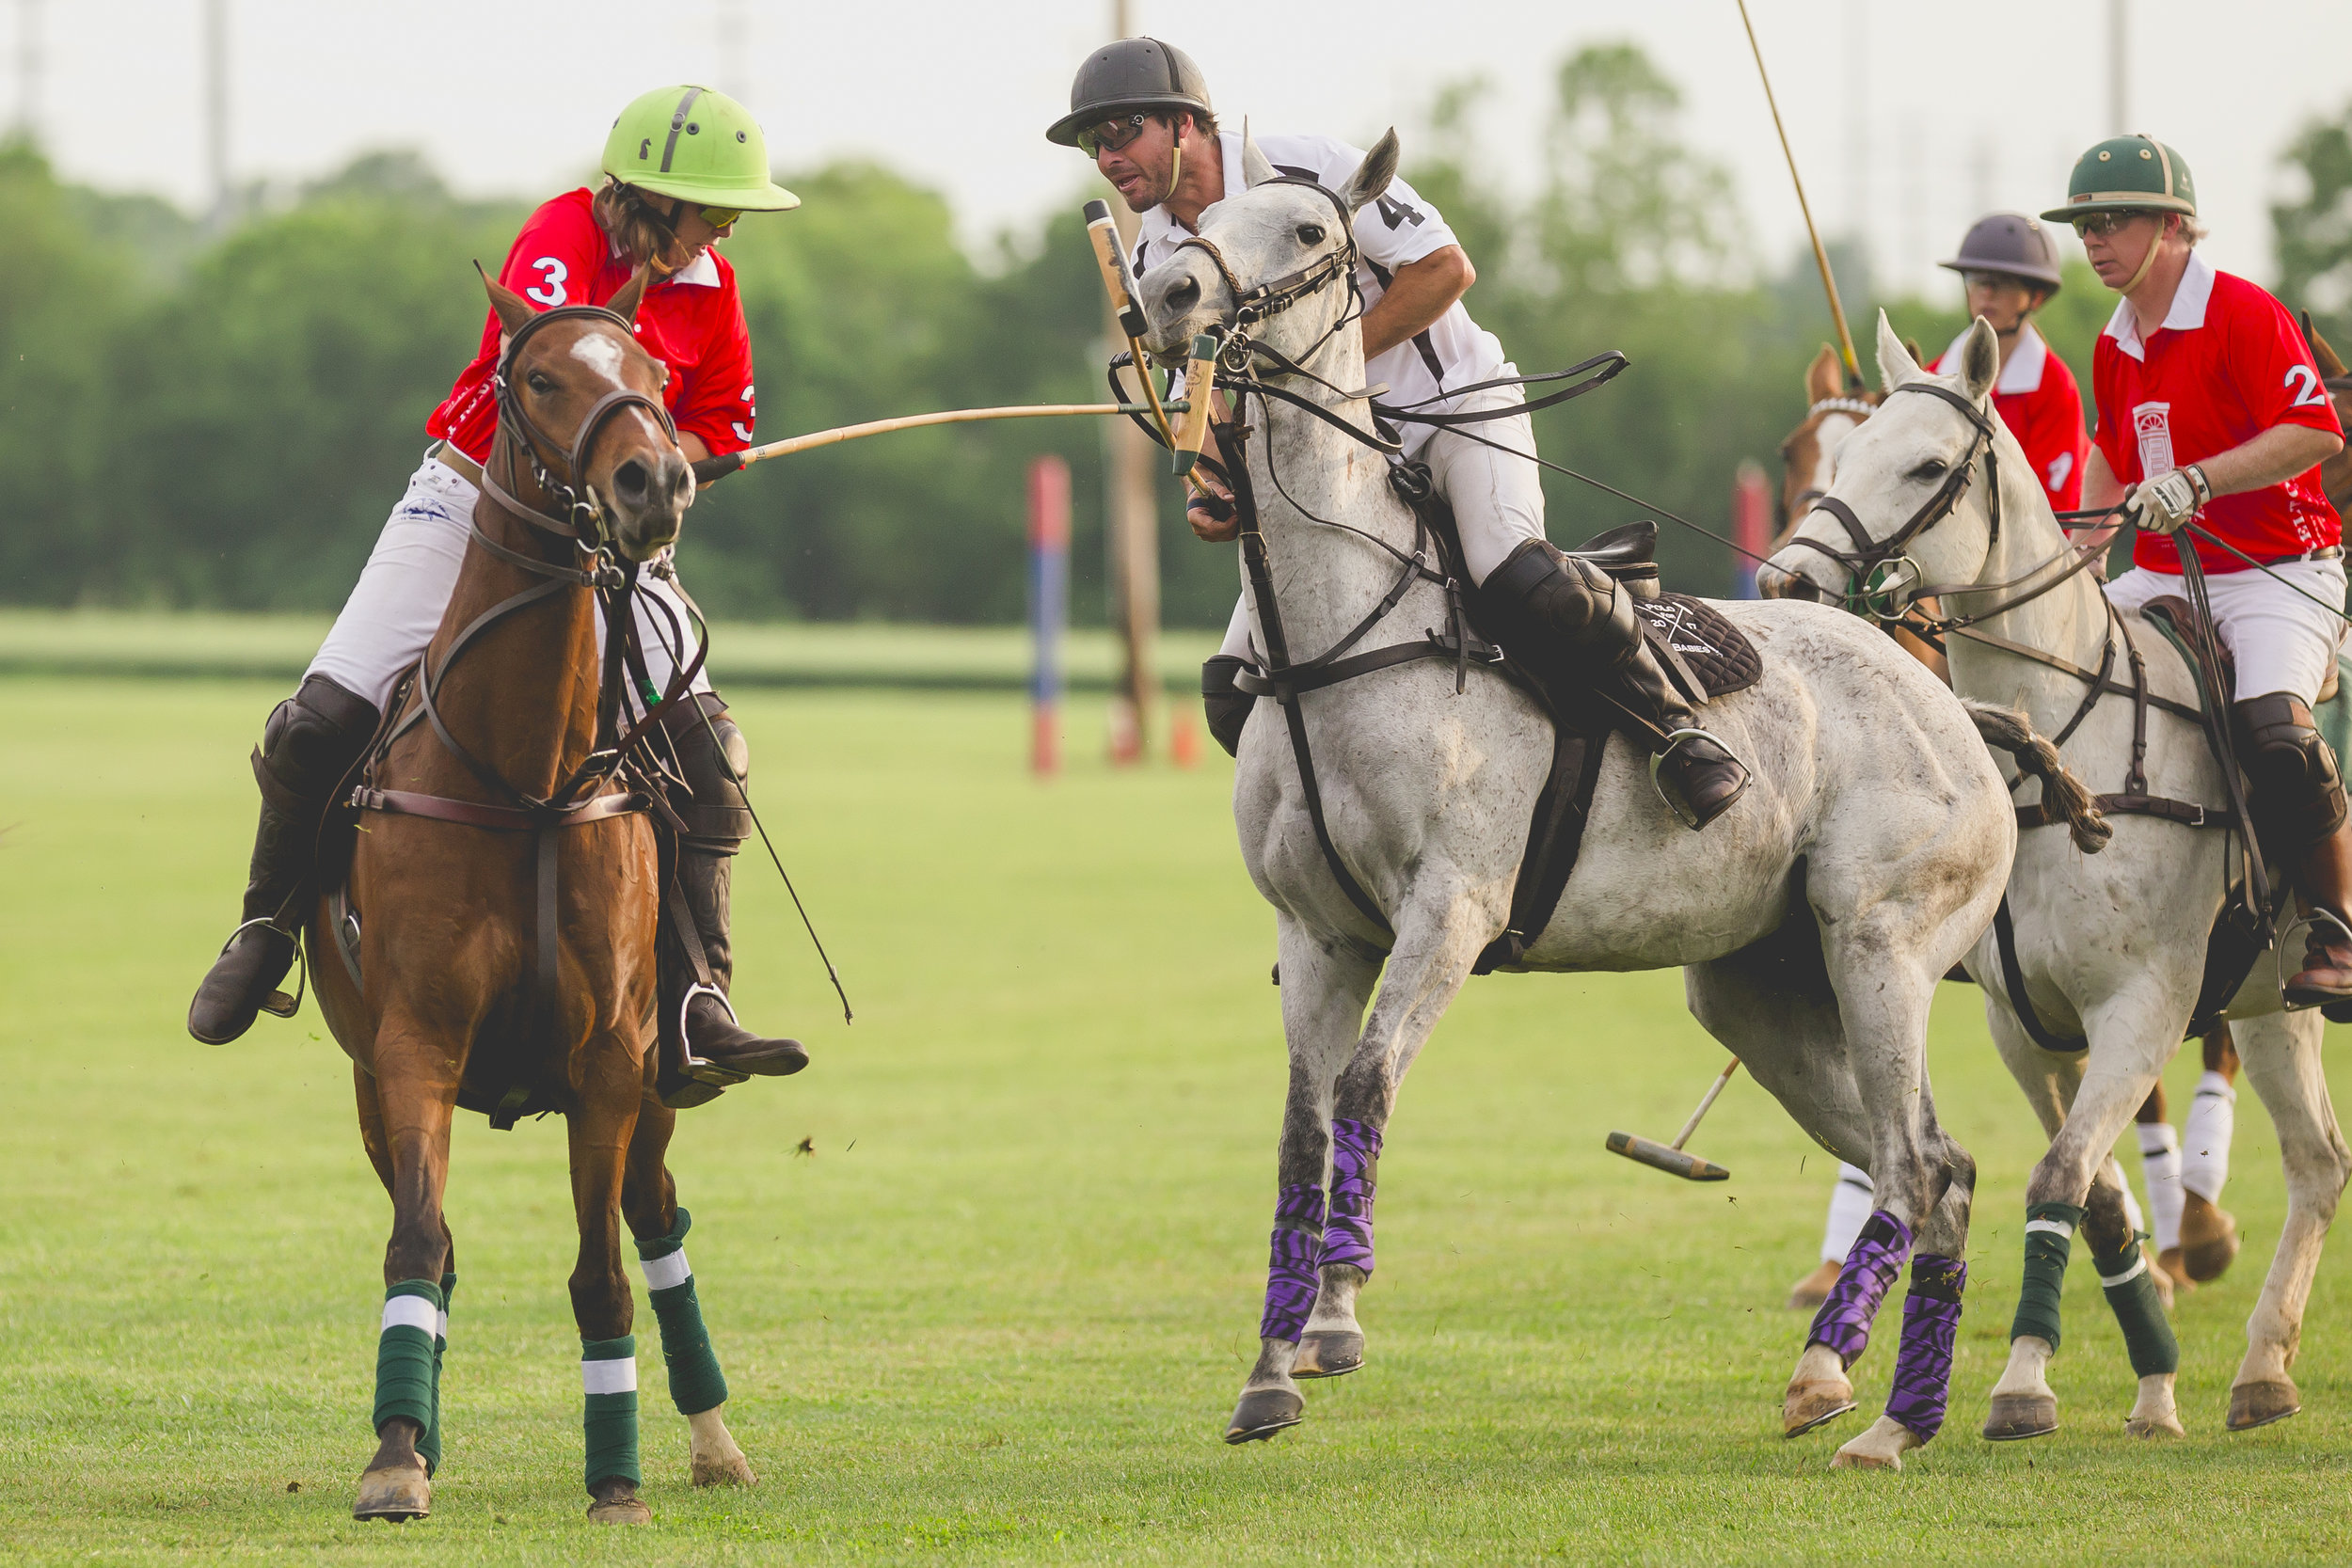 BBP-TWILIGHT POLO - -1-20.jpg